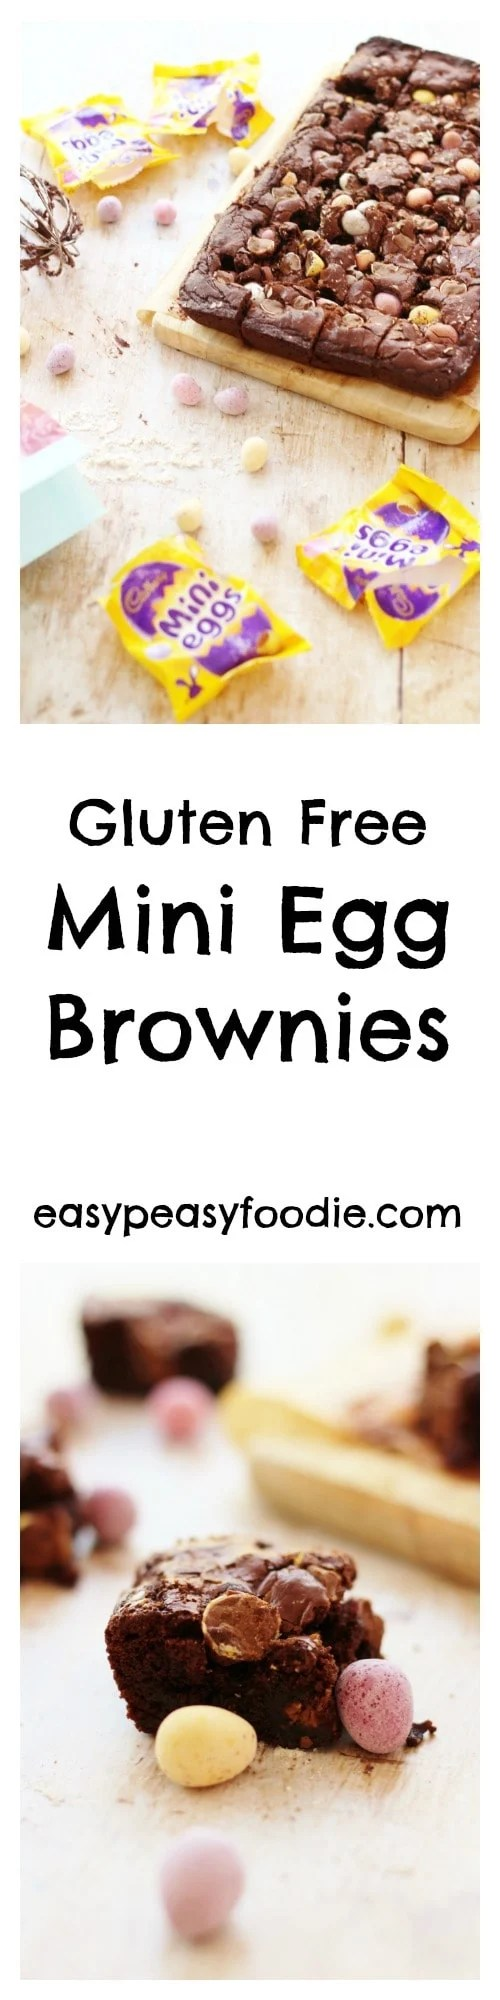 A really easy recipe for gluten free Mini Egg Brownies that are deliciously fudgy and chewy on the inside and crunchy on the outside, stuffed full of little mini eggs, making them perfect for Easter! #minieggs #brownies #minieggbrownies #easter #easter2018 #glutenfree #glutenfreebrownies #glutenfreebaking #easybaking #easypeasyfoodie #freefromfairyflour